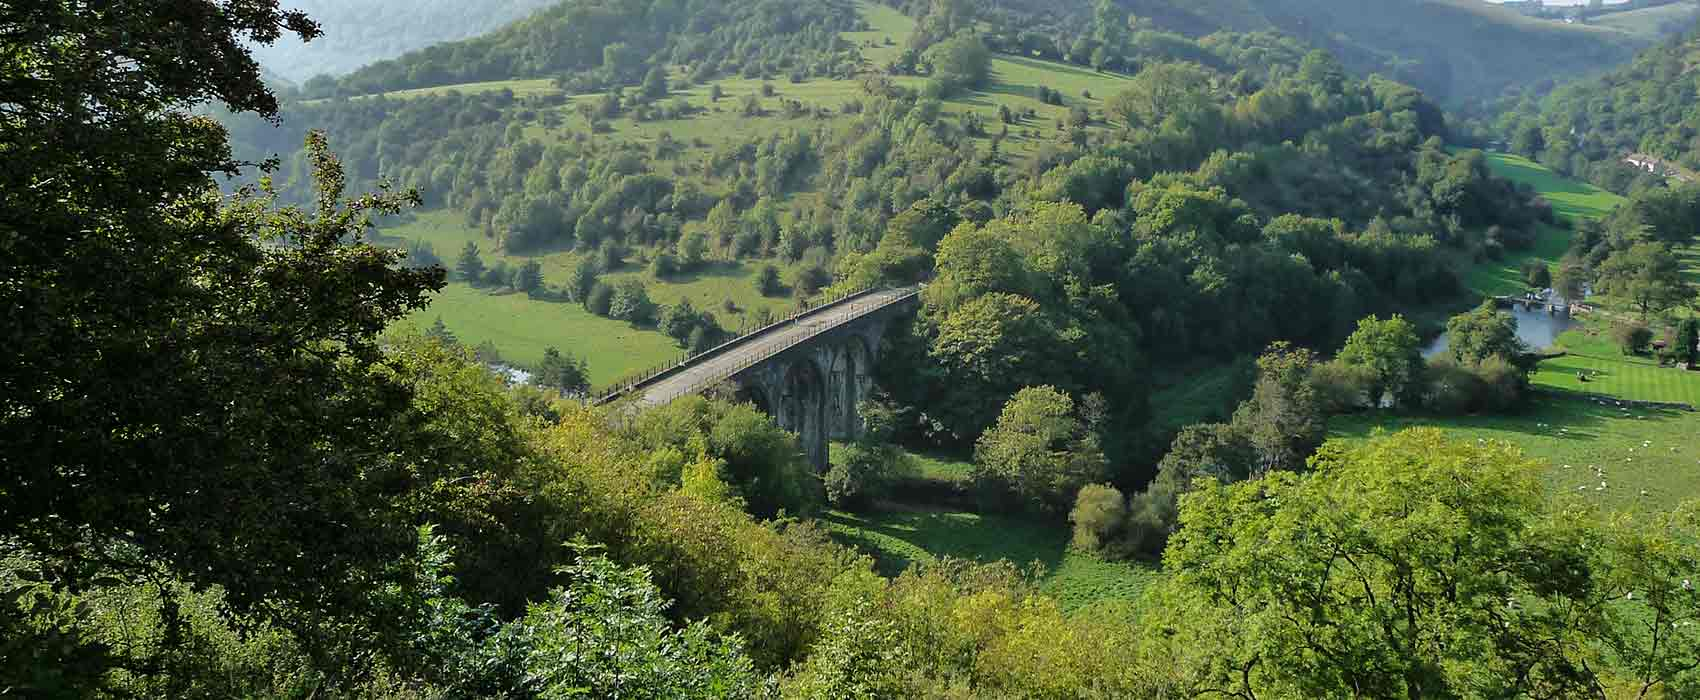 Monsal Dale aqueduct over river